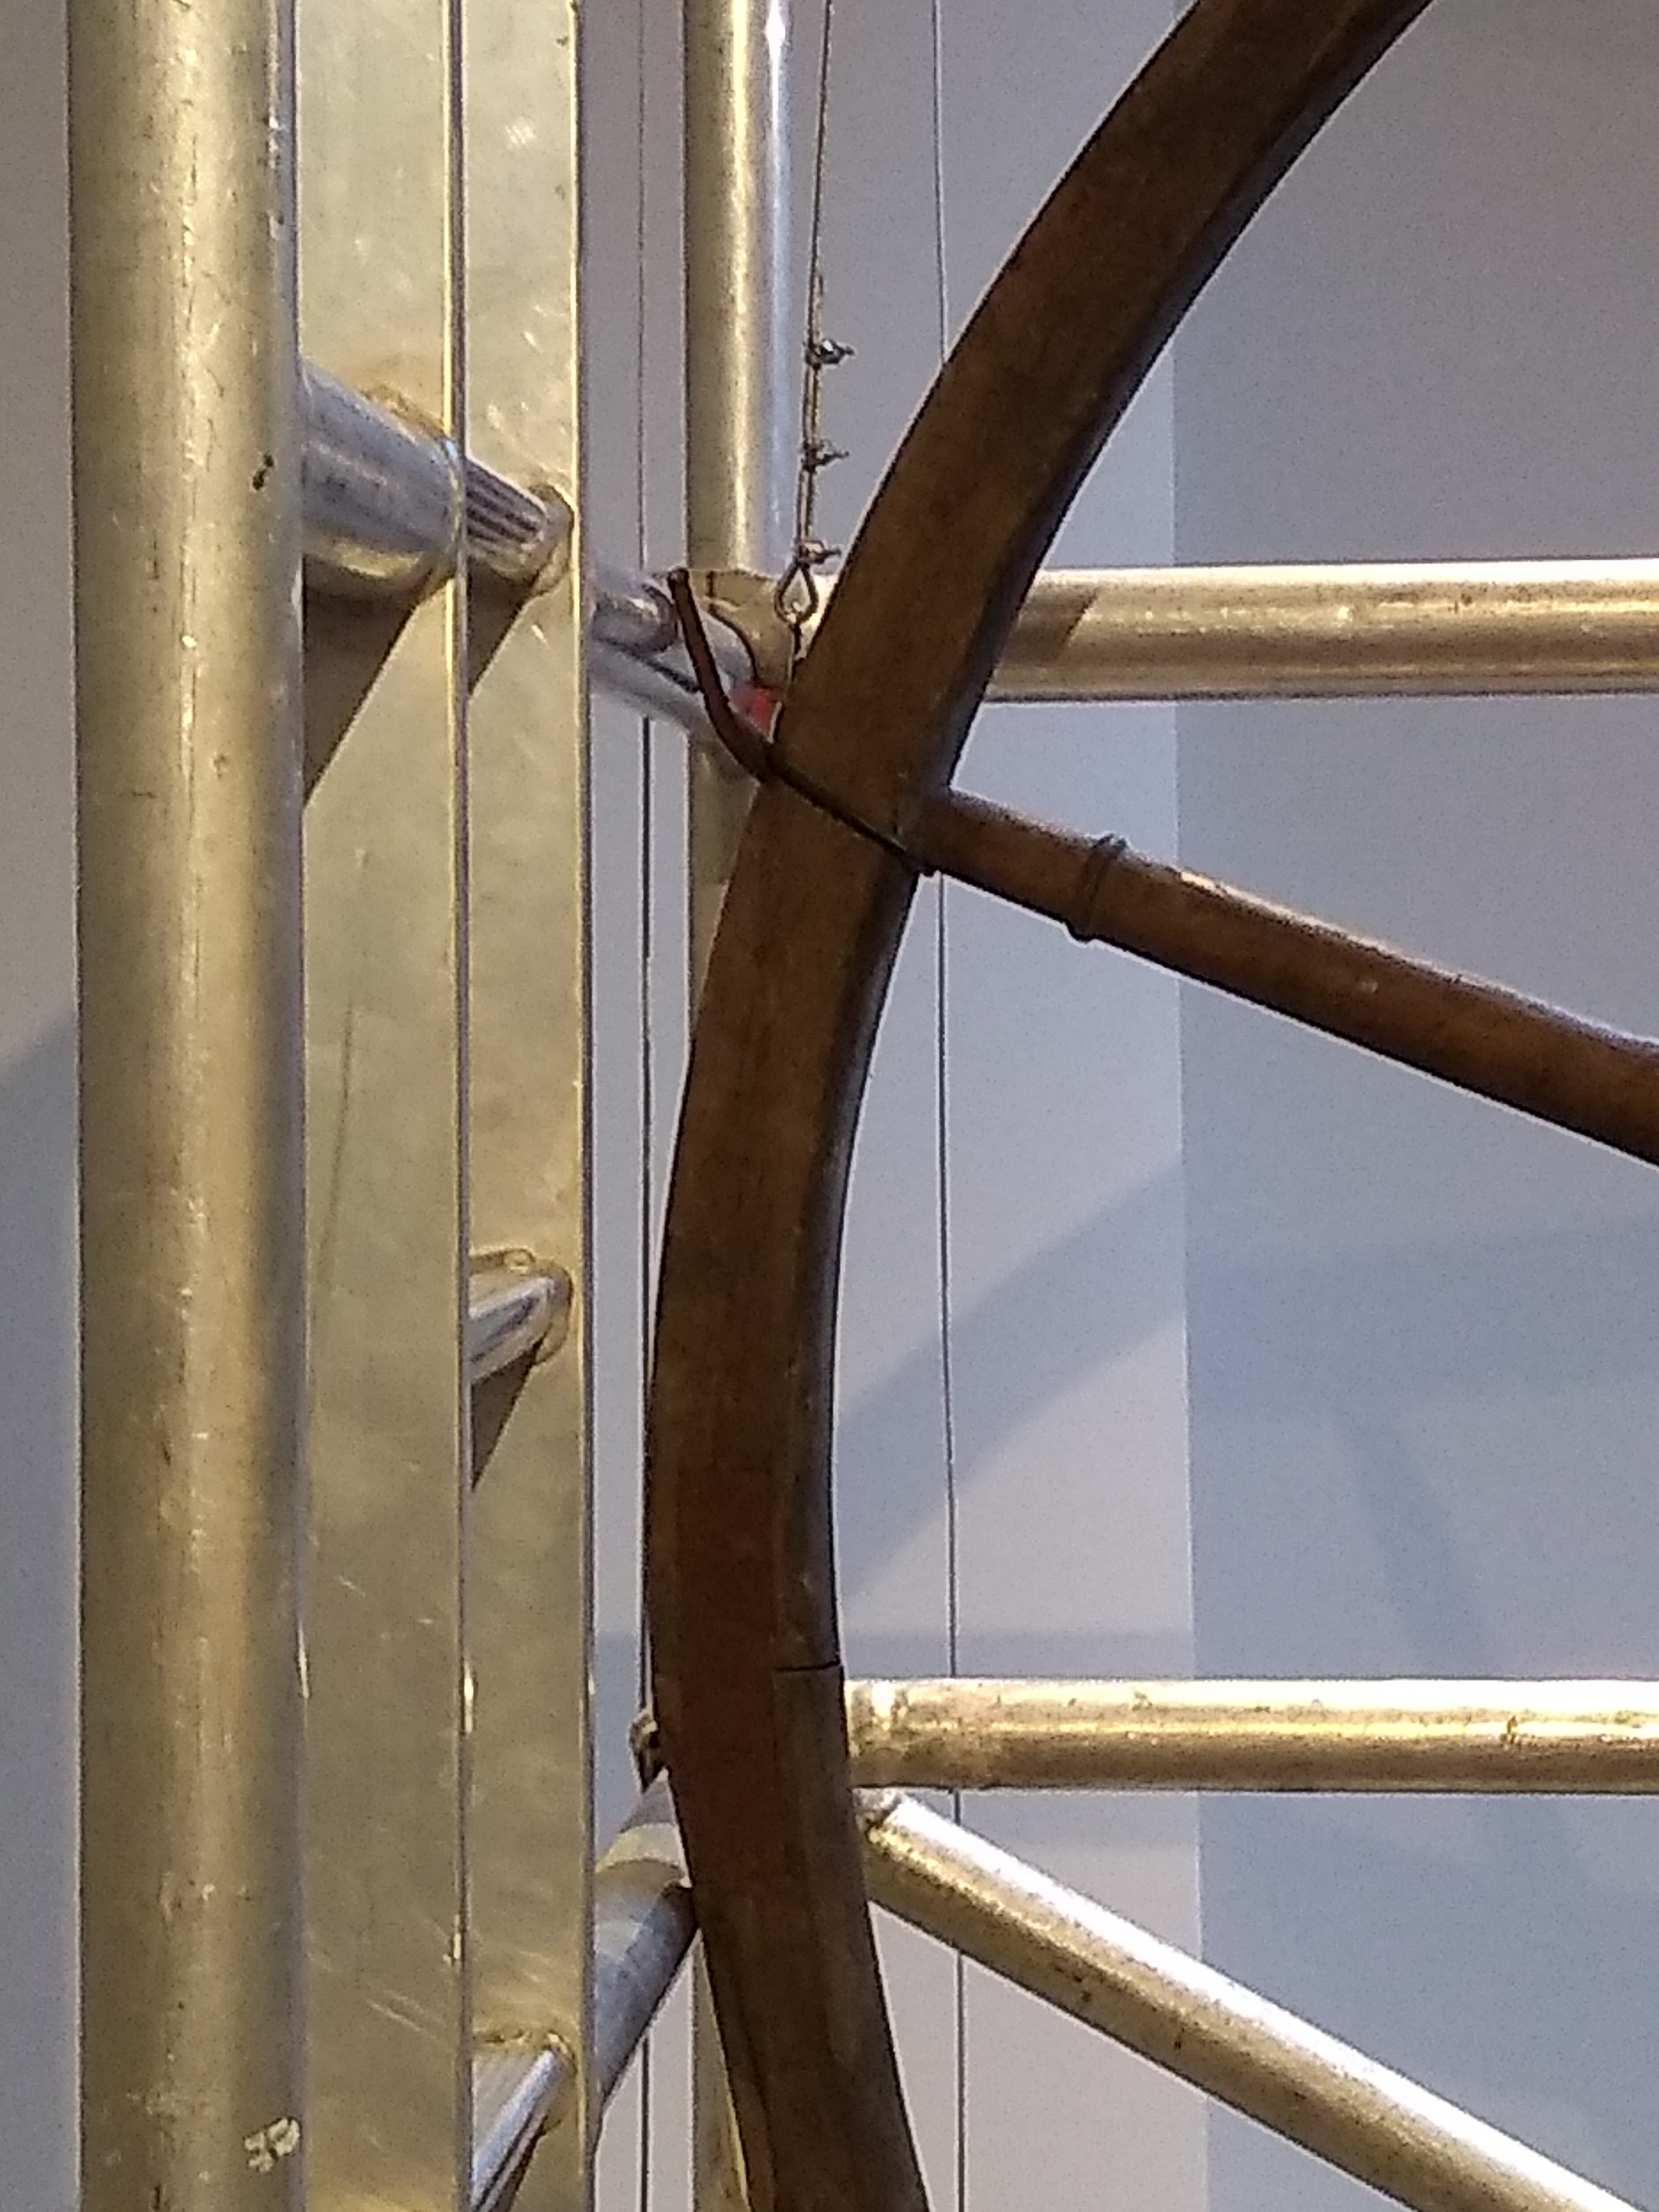 Scaffolding supporting a wheel from the collection.